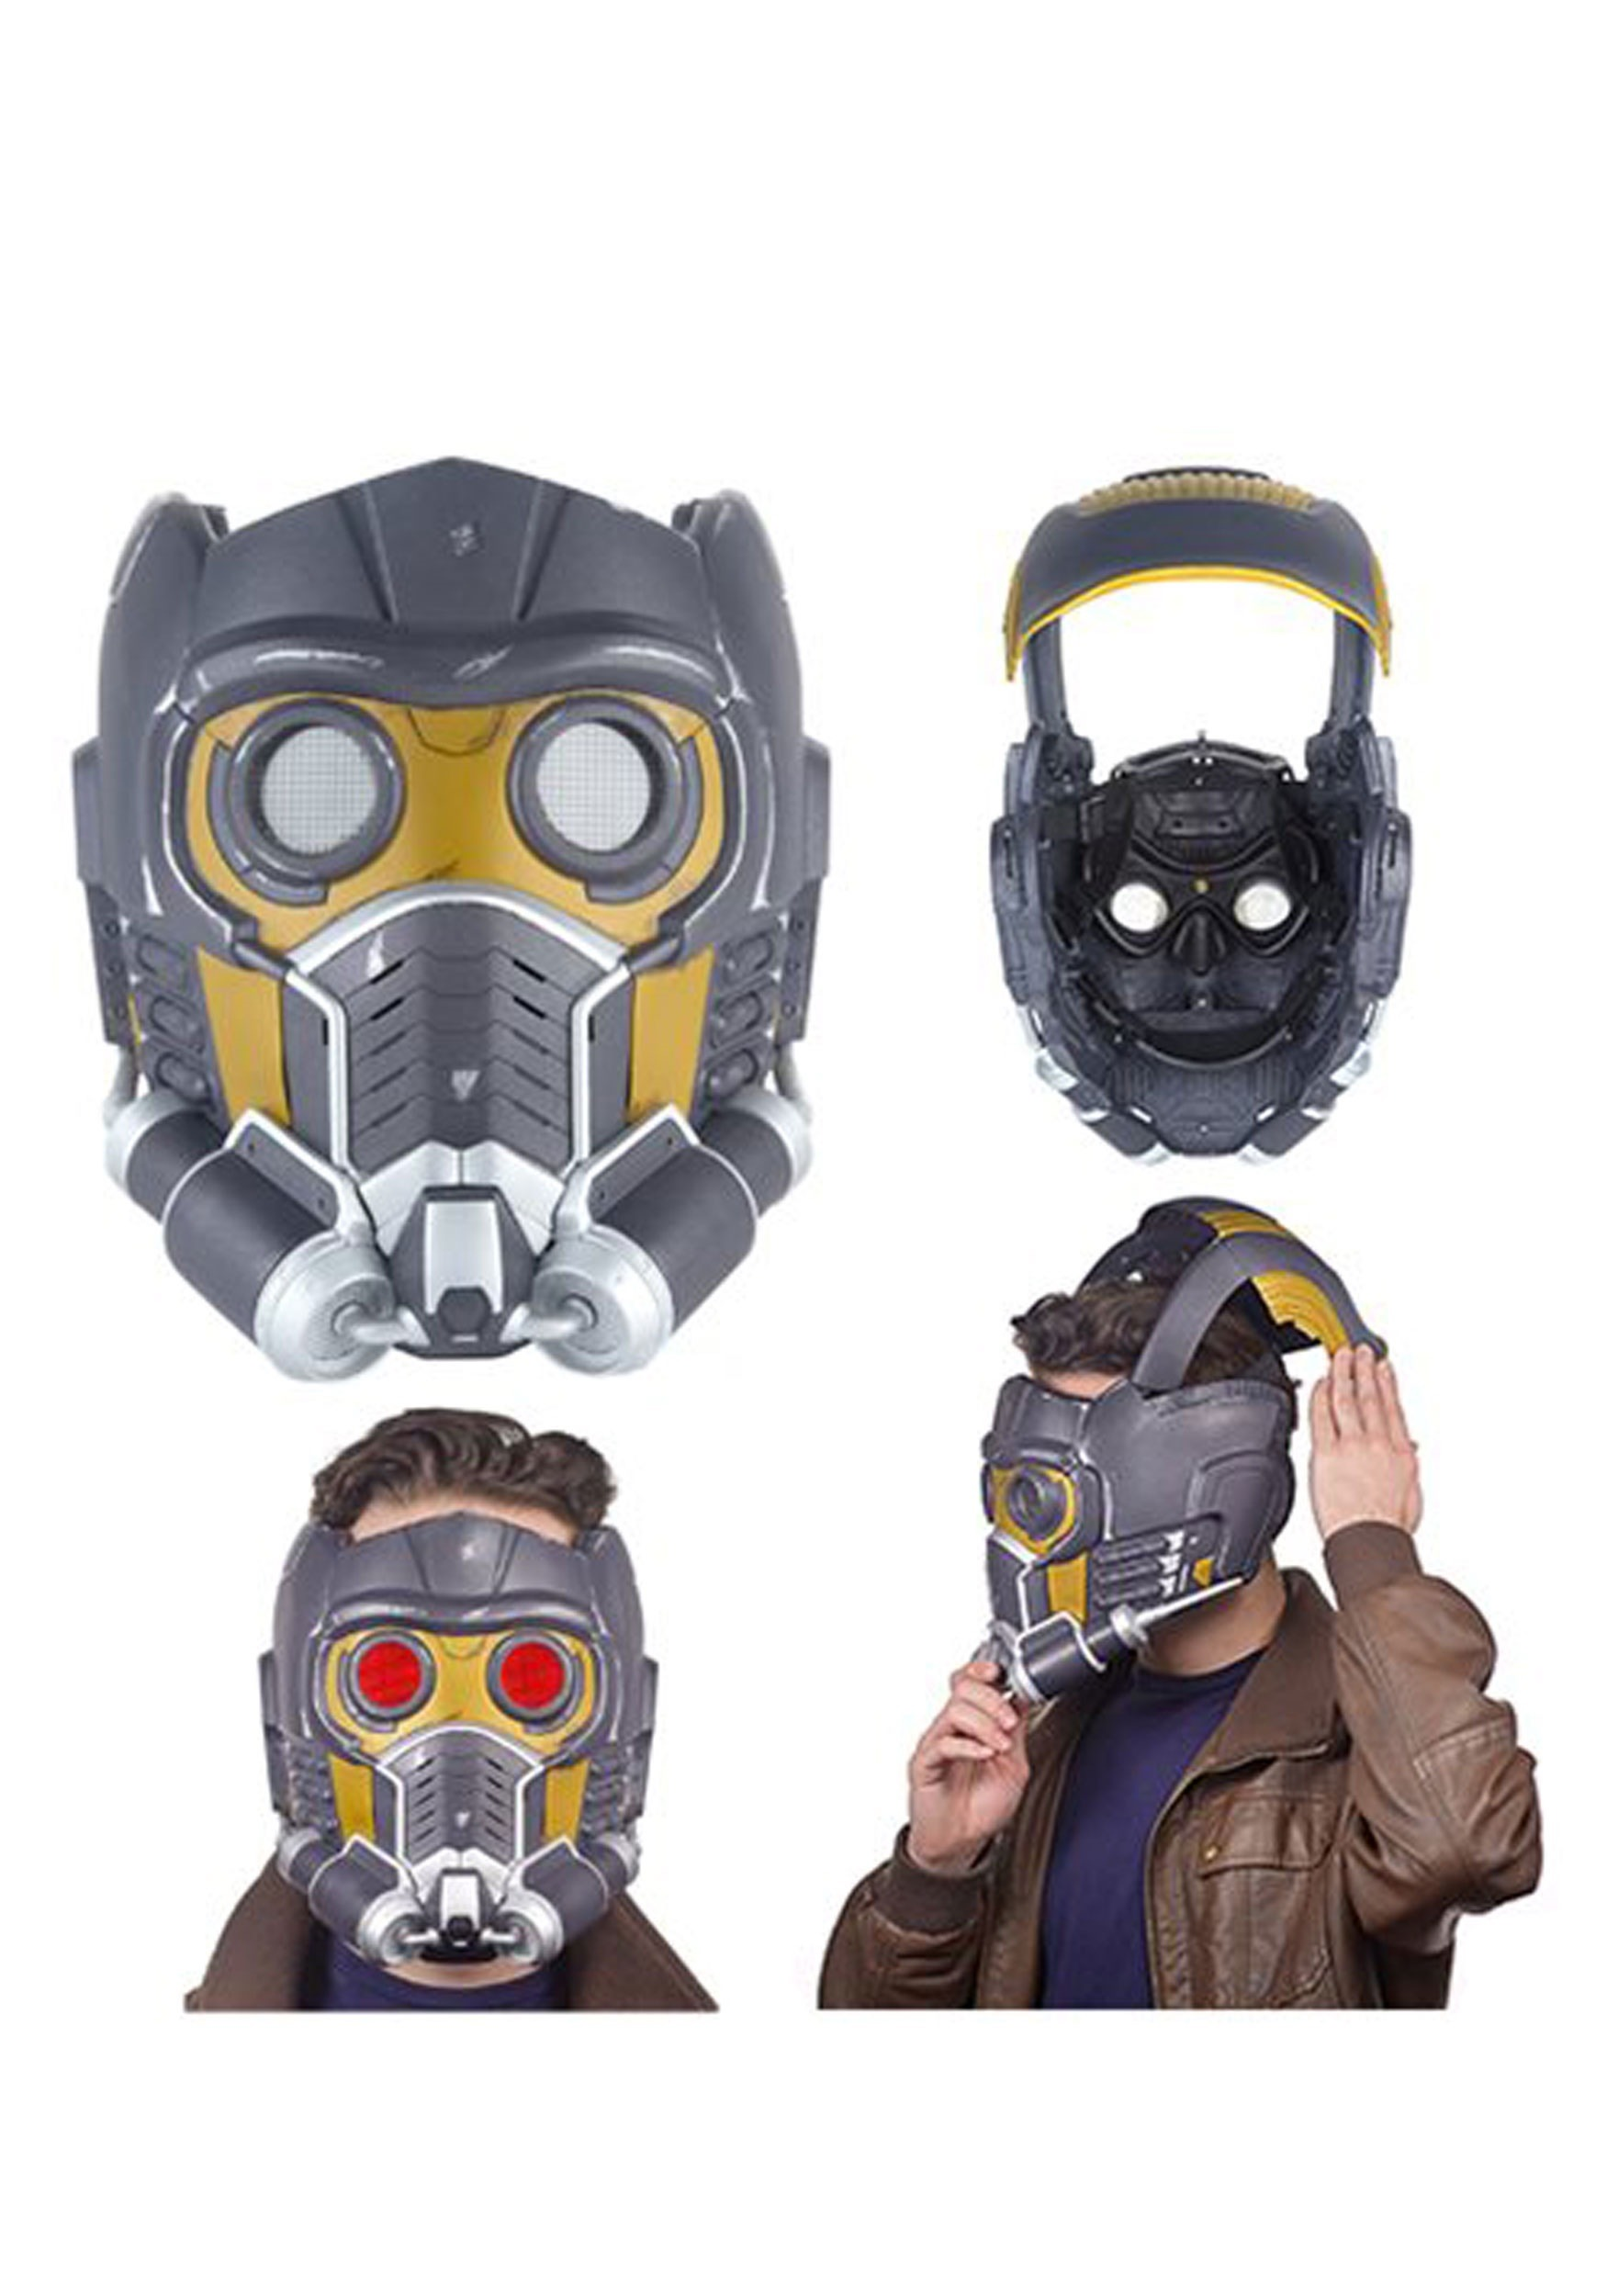 Marvel Legends Star-Lord Mask from Guardians of the Galaxy